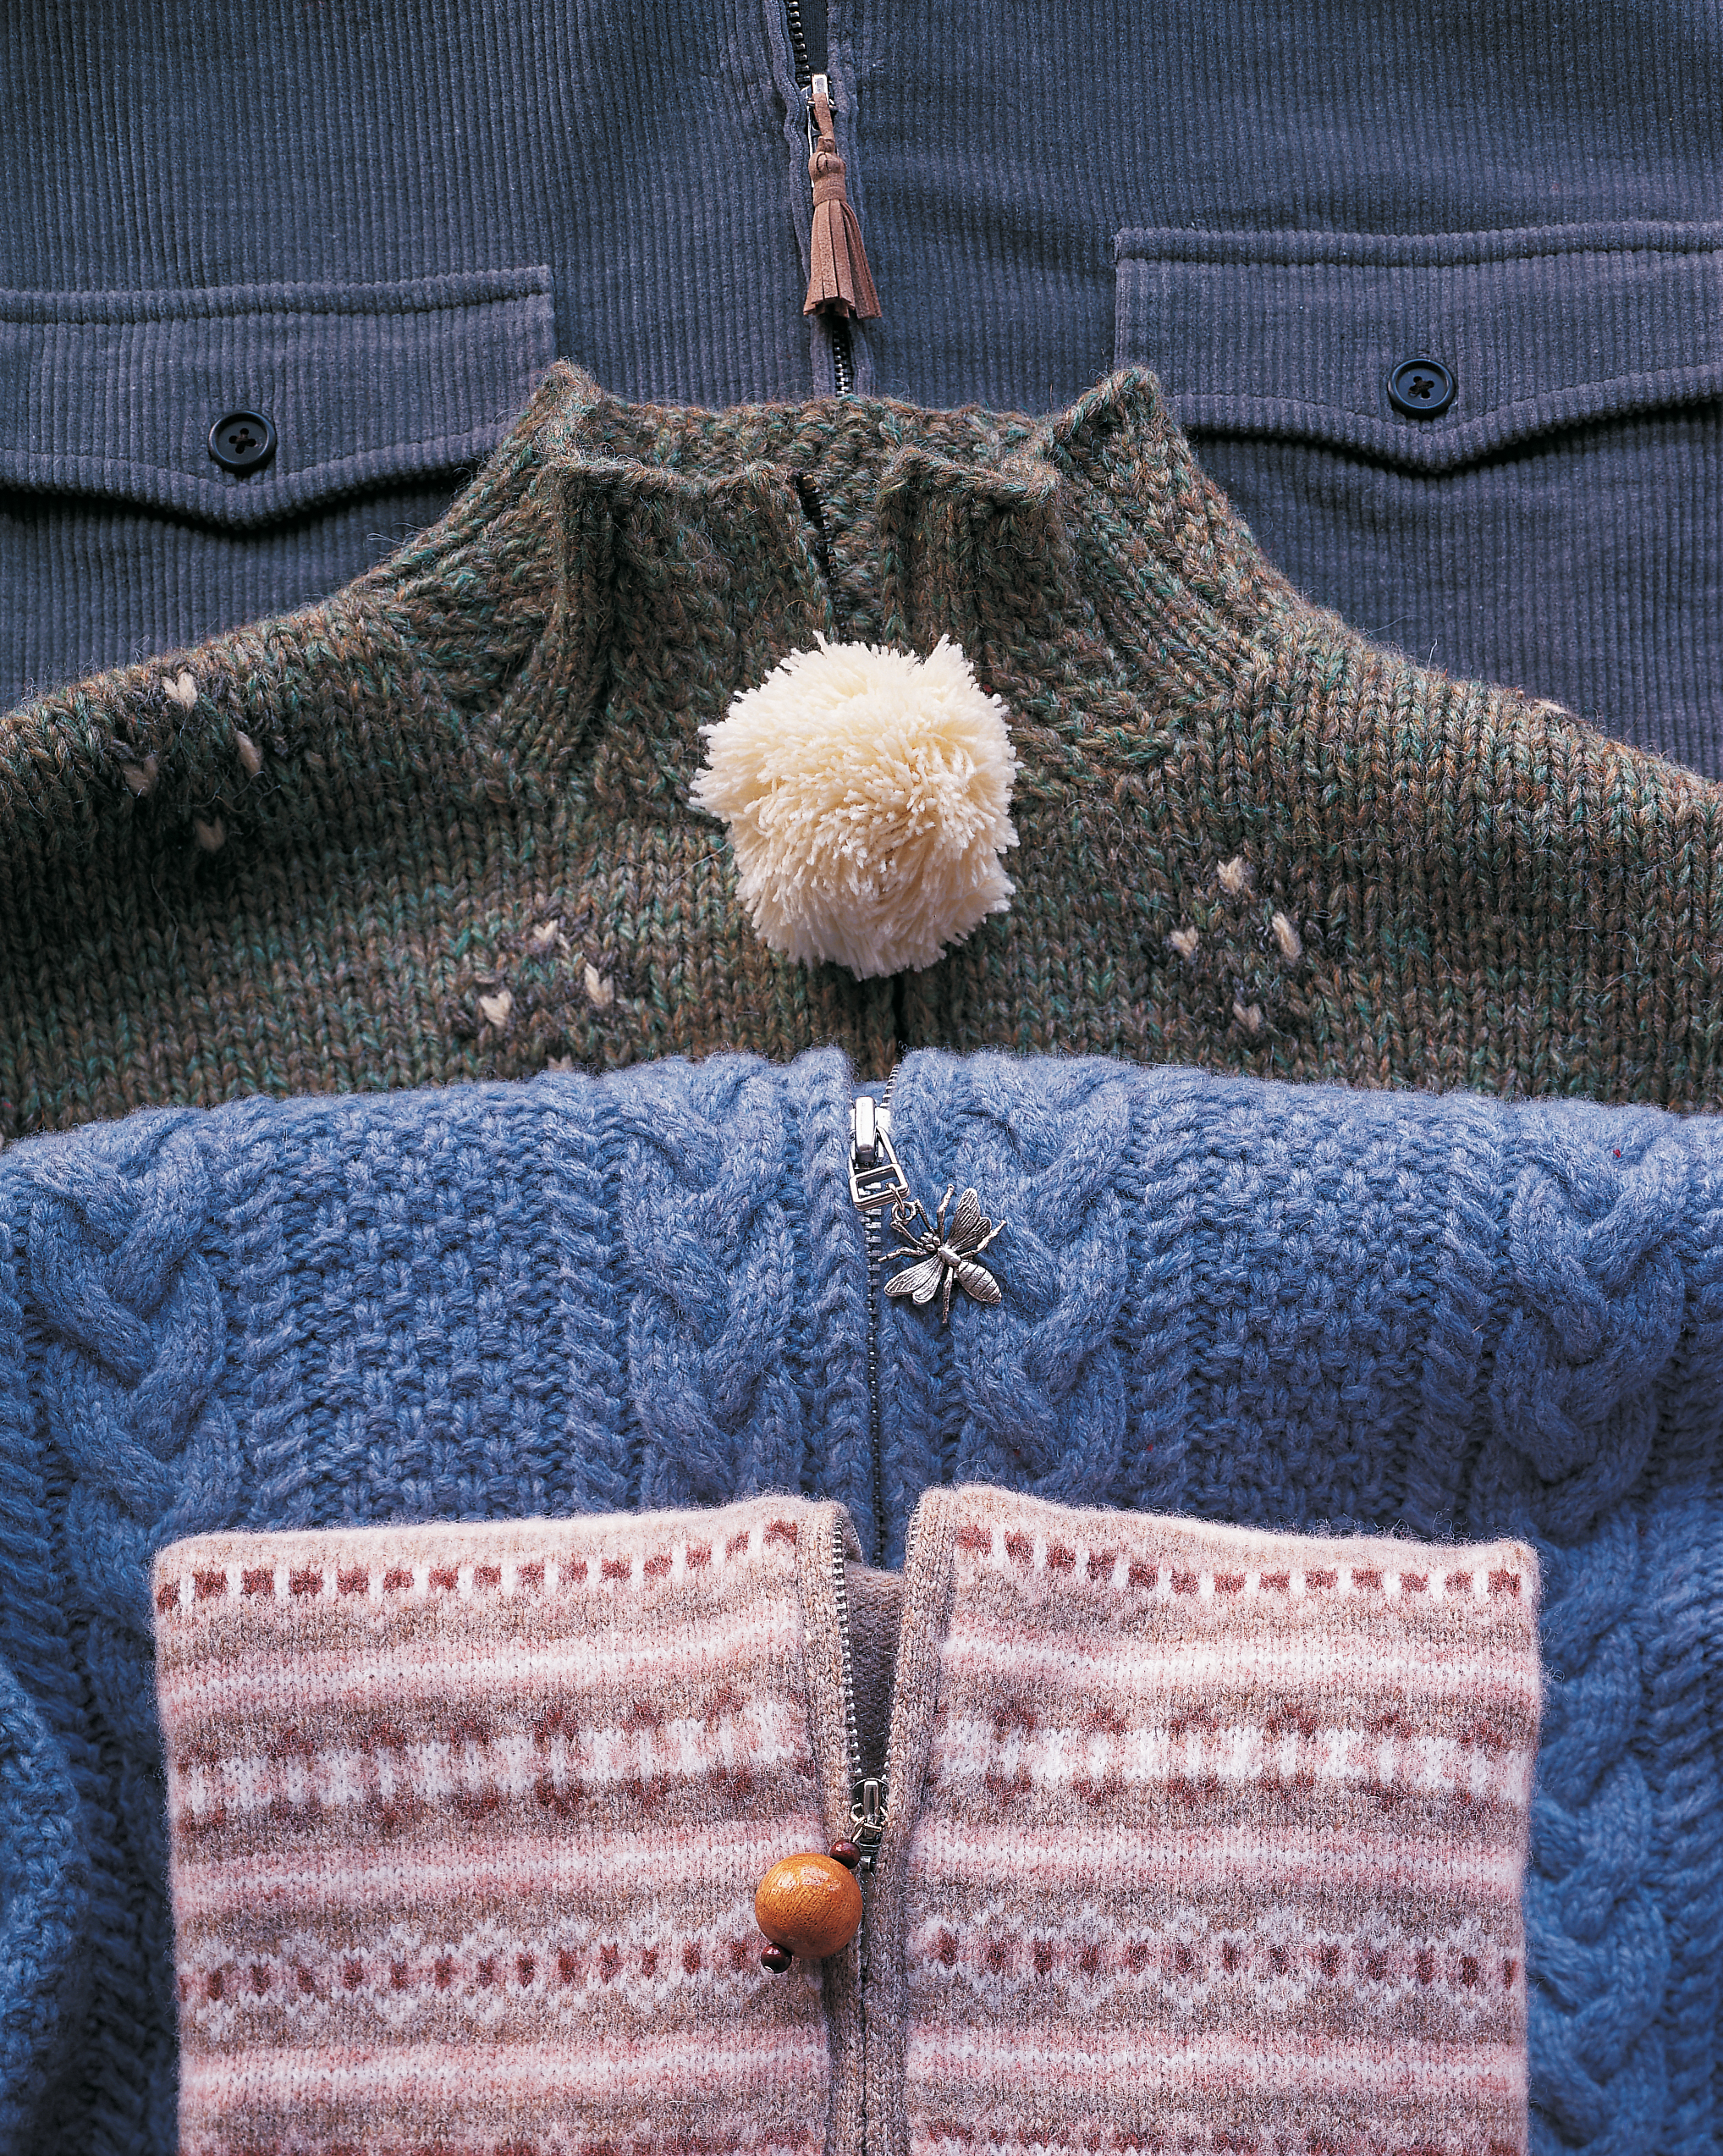 10 Good Things for Your Clothes